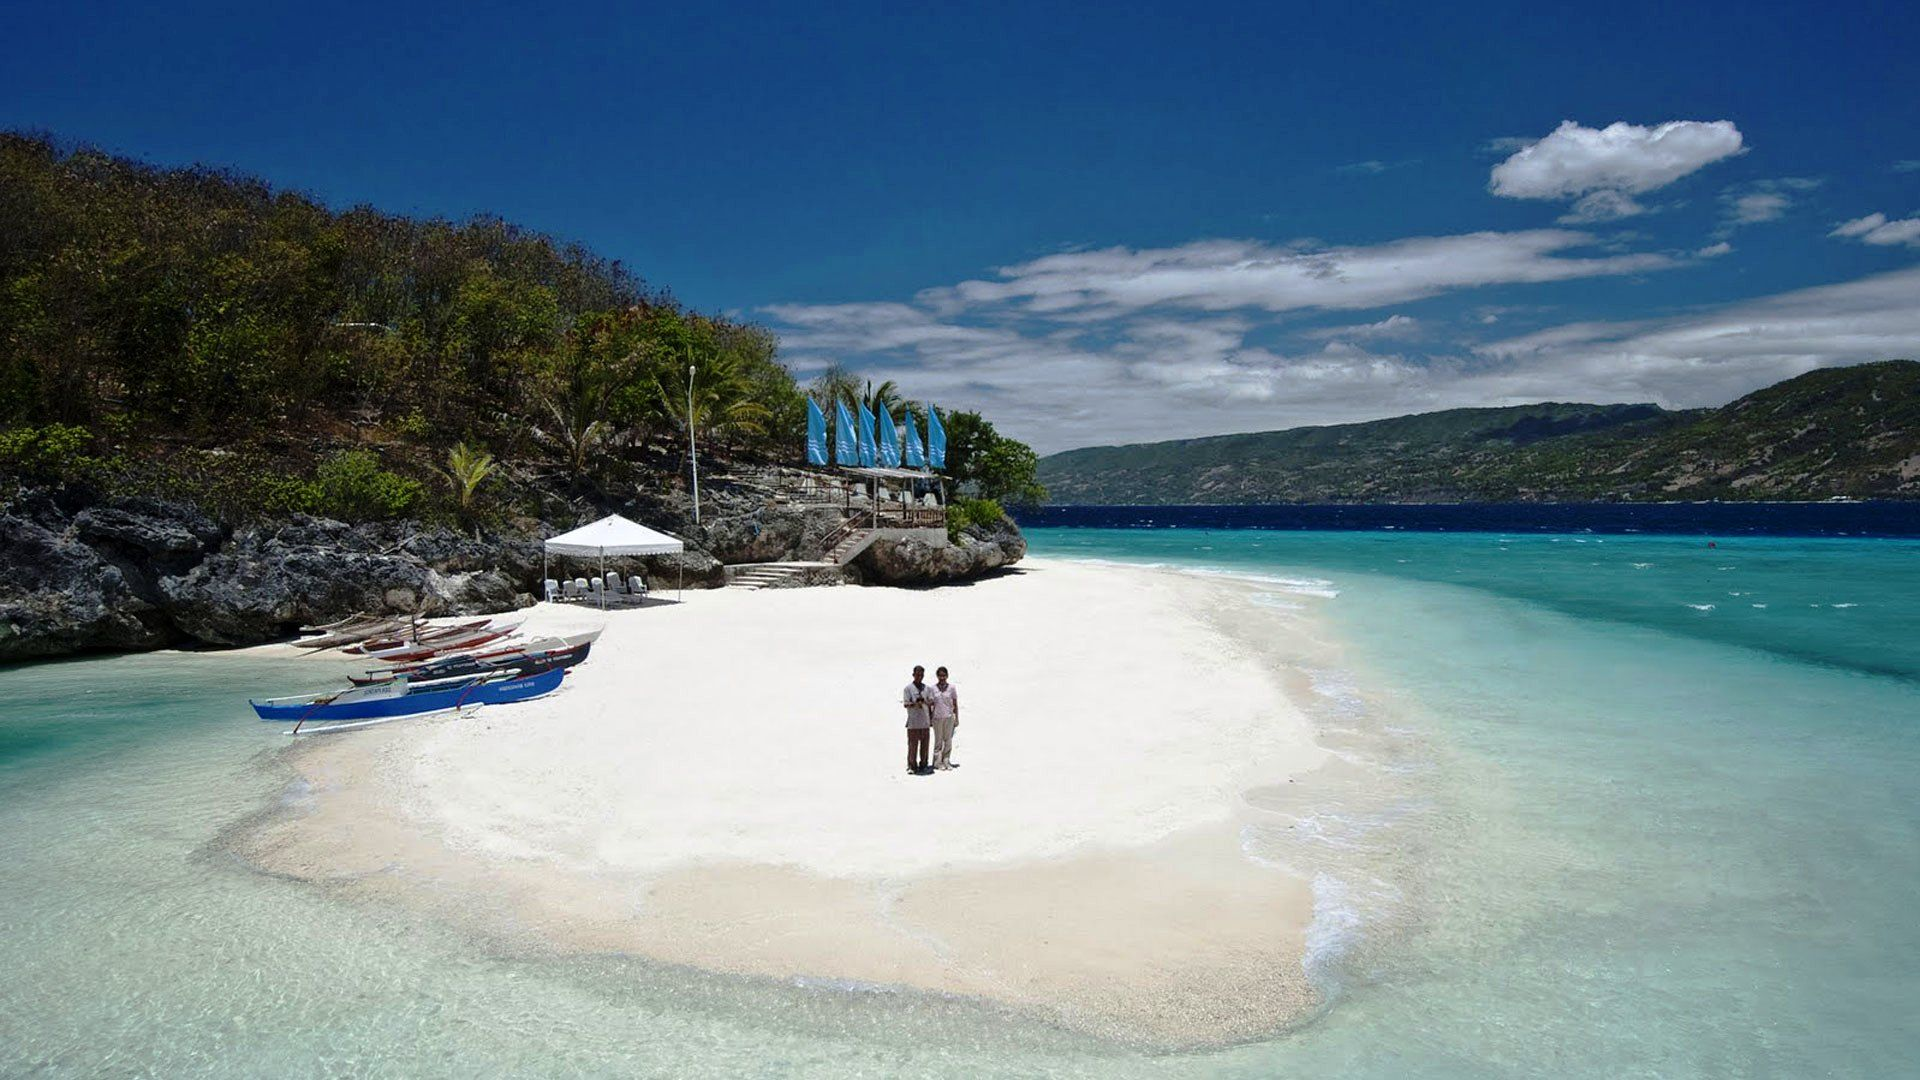 107 Best Philippines Tourism Images On Pinterest - Philippines Tourism,